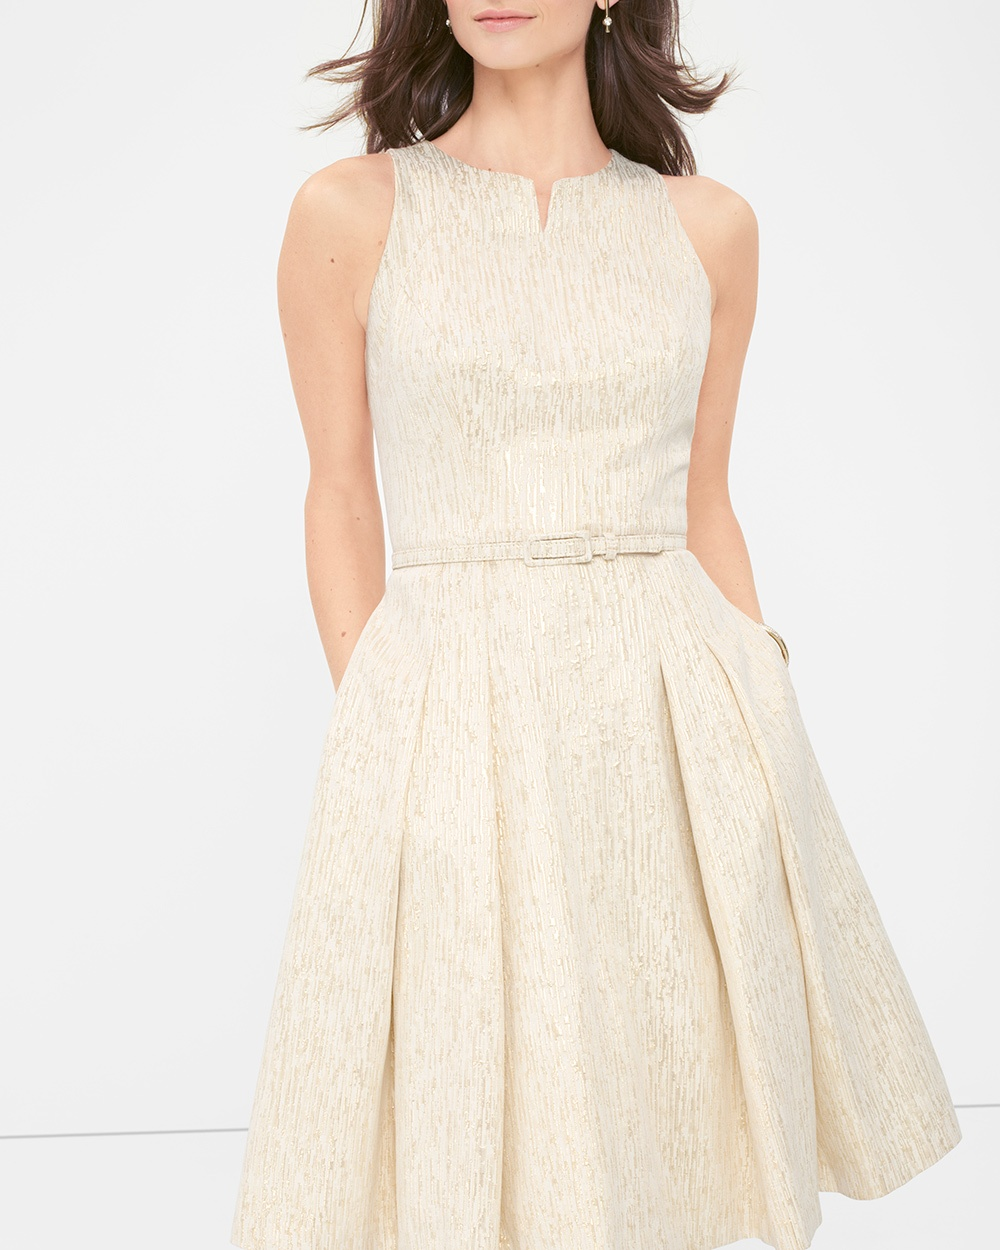 GOLD METALLIC JACQUARD FIT-AND-FLARE DRESS